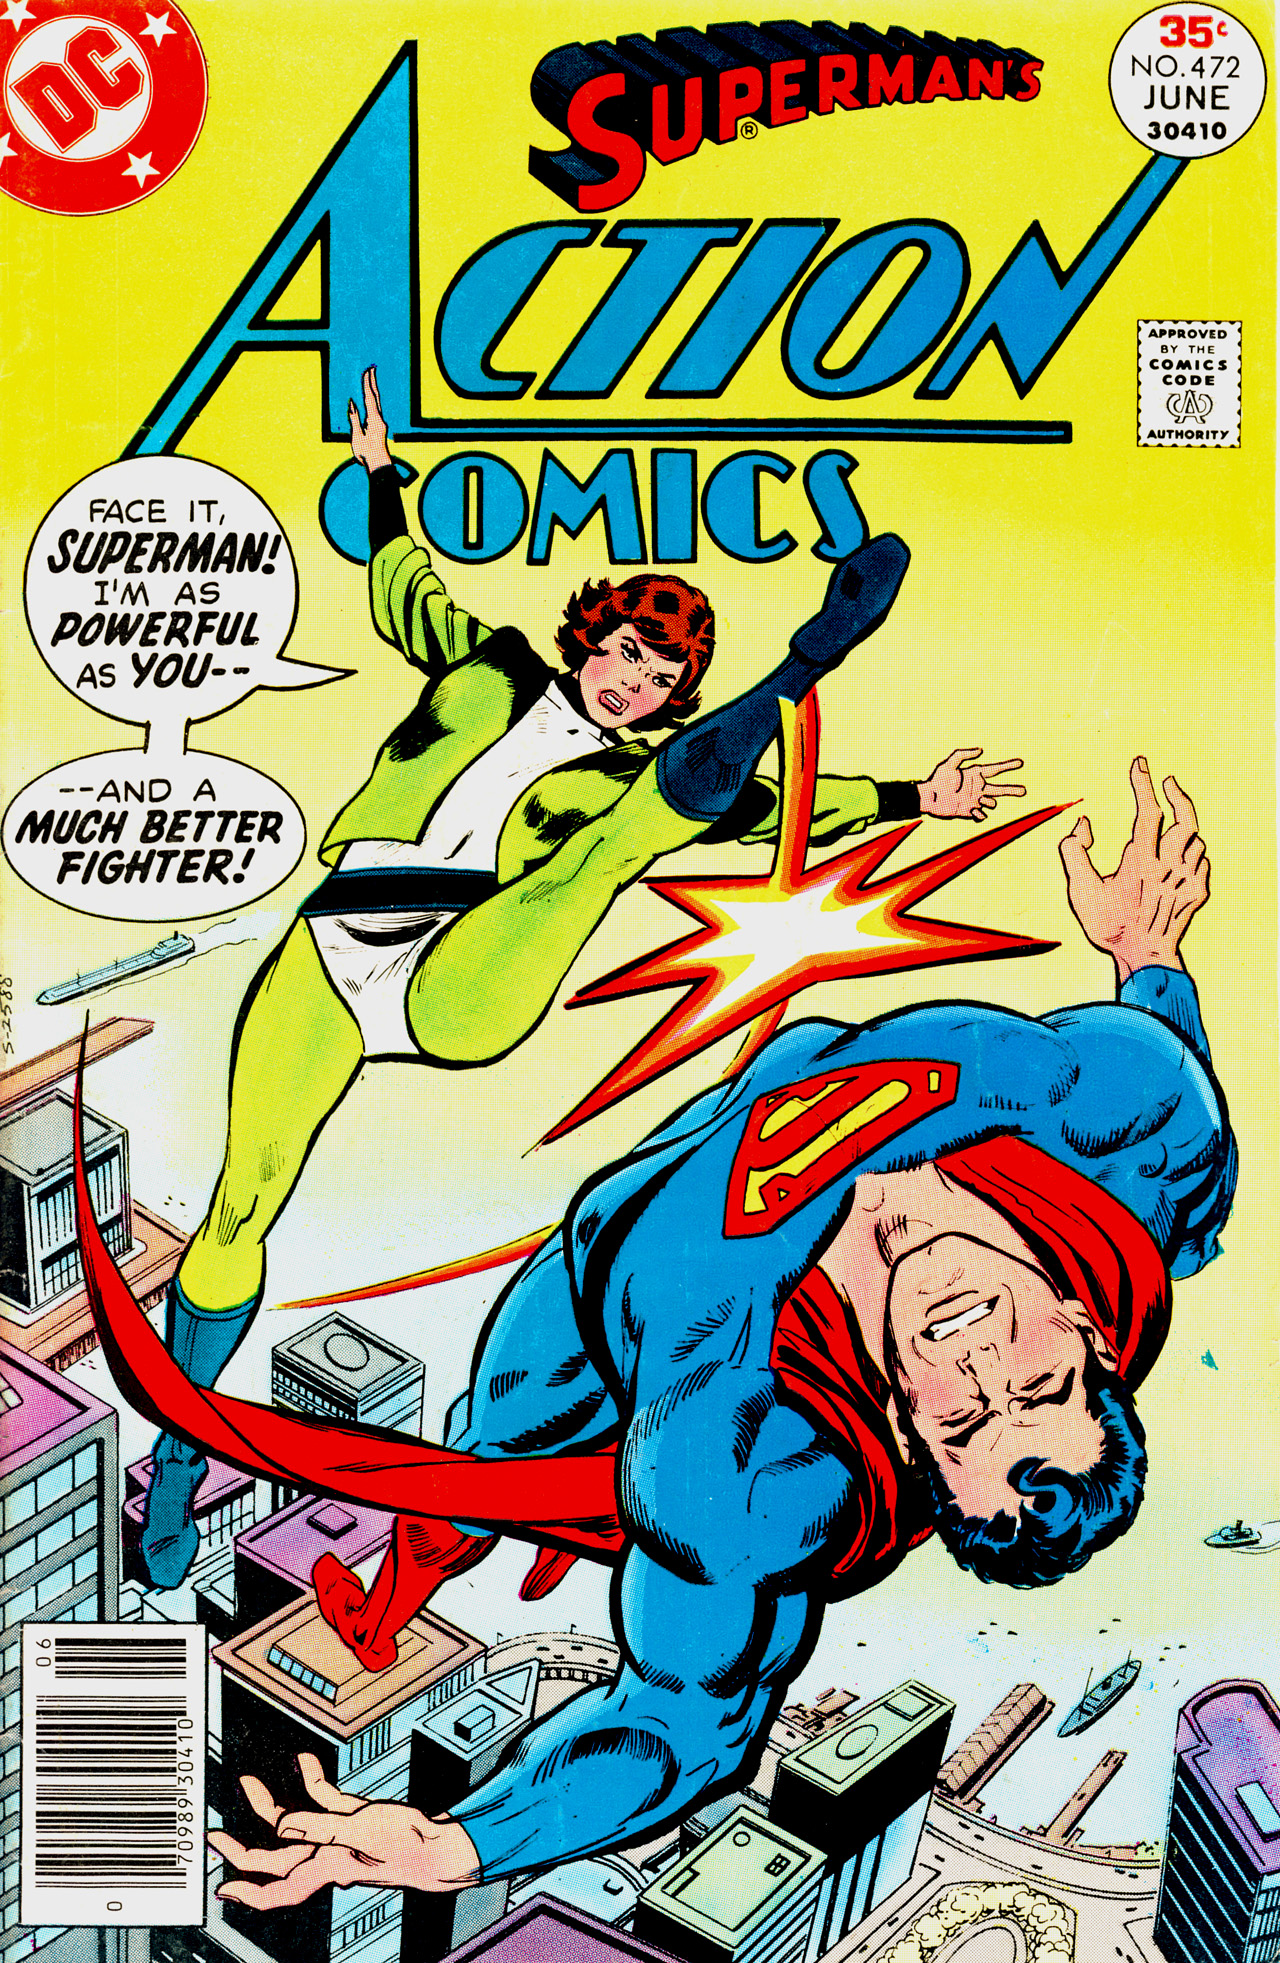 Read online Action Comics (1938) comic -  Issue #472 - 1